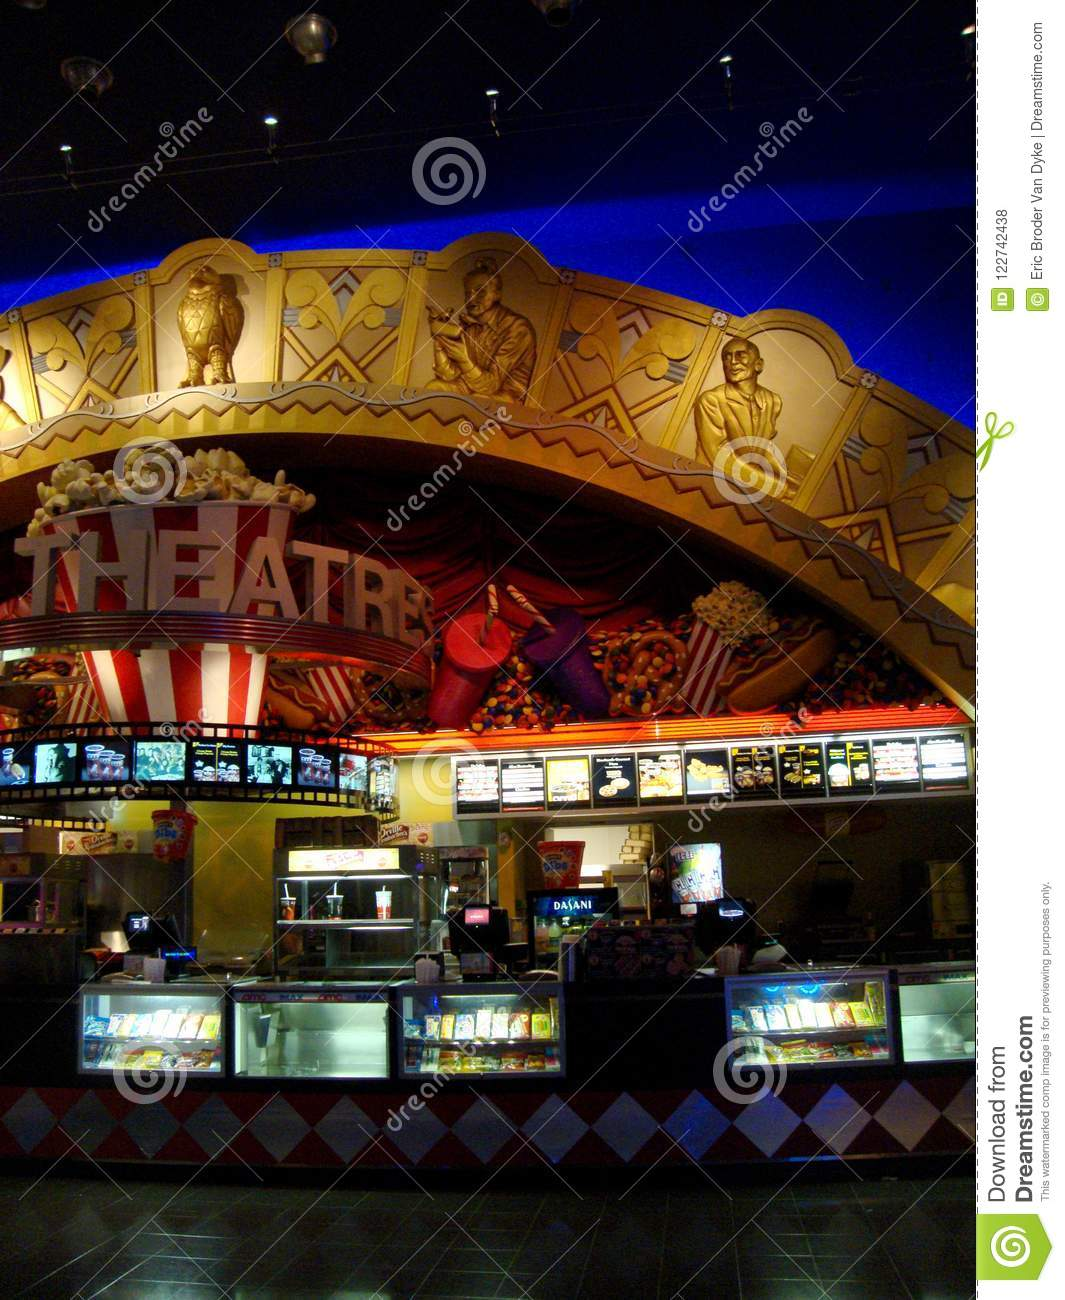 Concession Stand For Theater Room With Images: Movie Theater Concession Stand Editorial Stock Photo